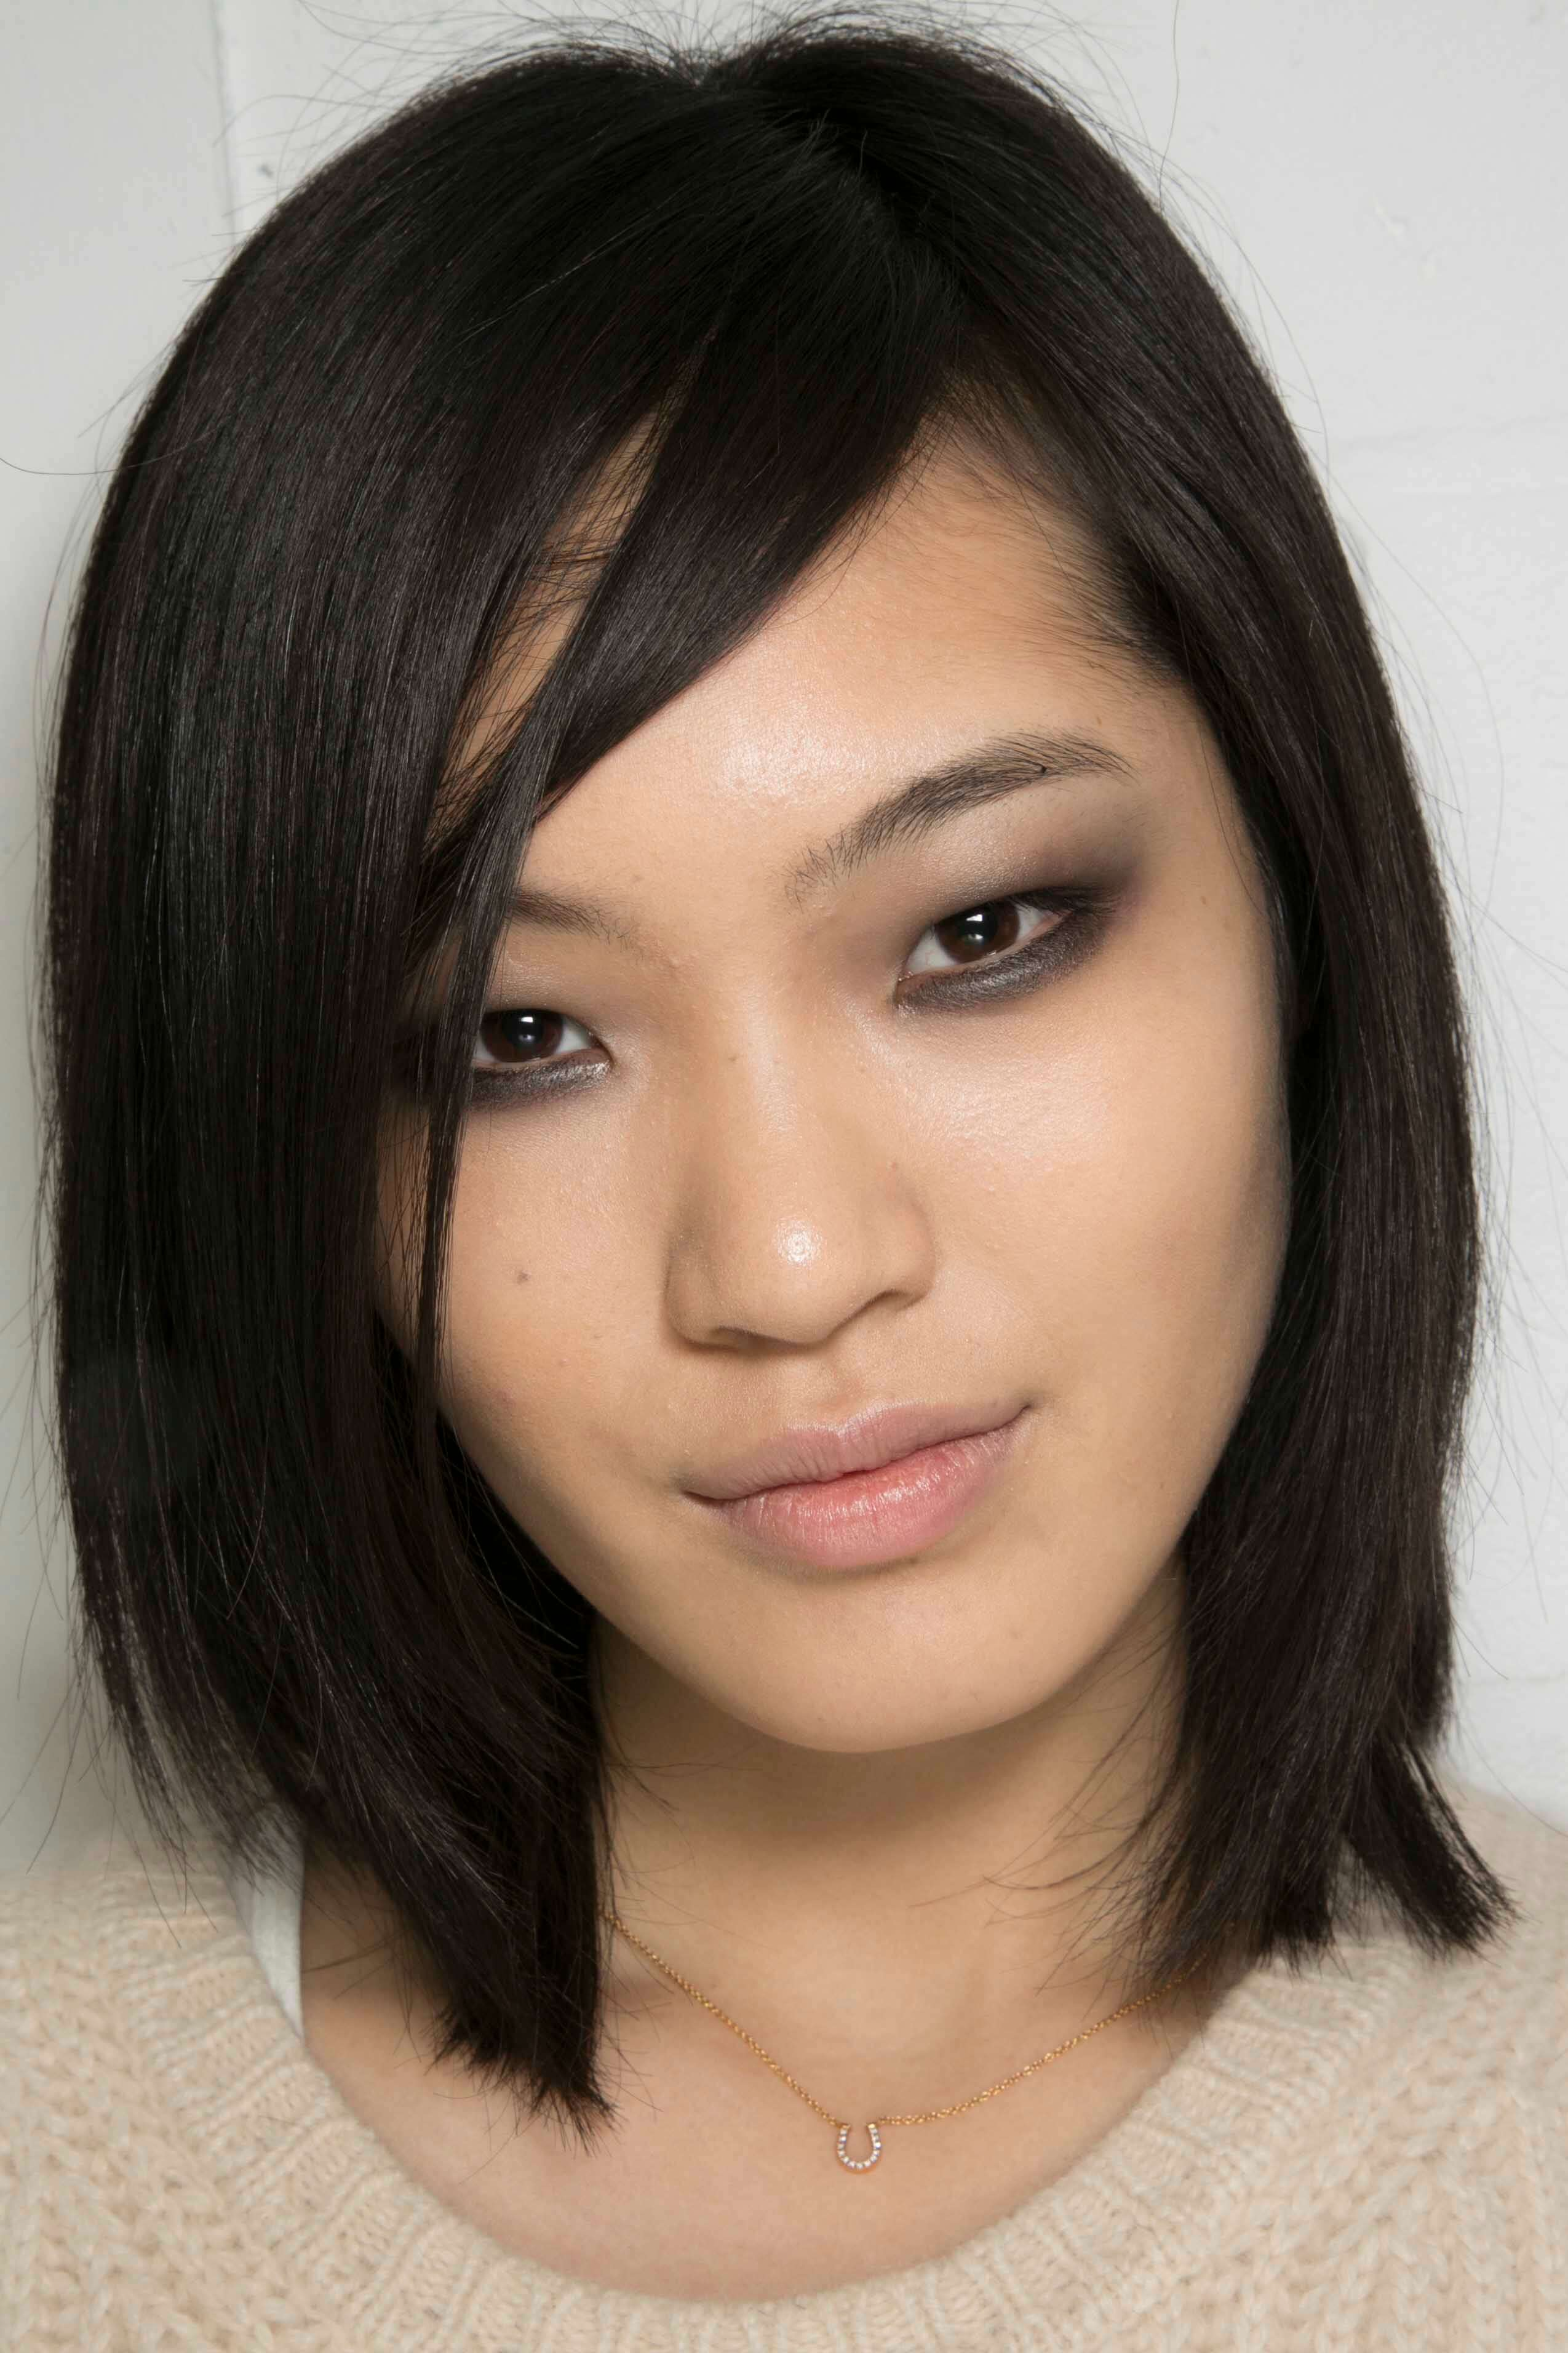 Asian lob and side fringe hairstyles for round faces